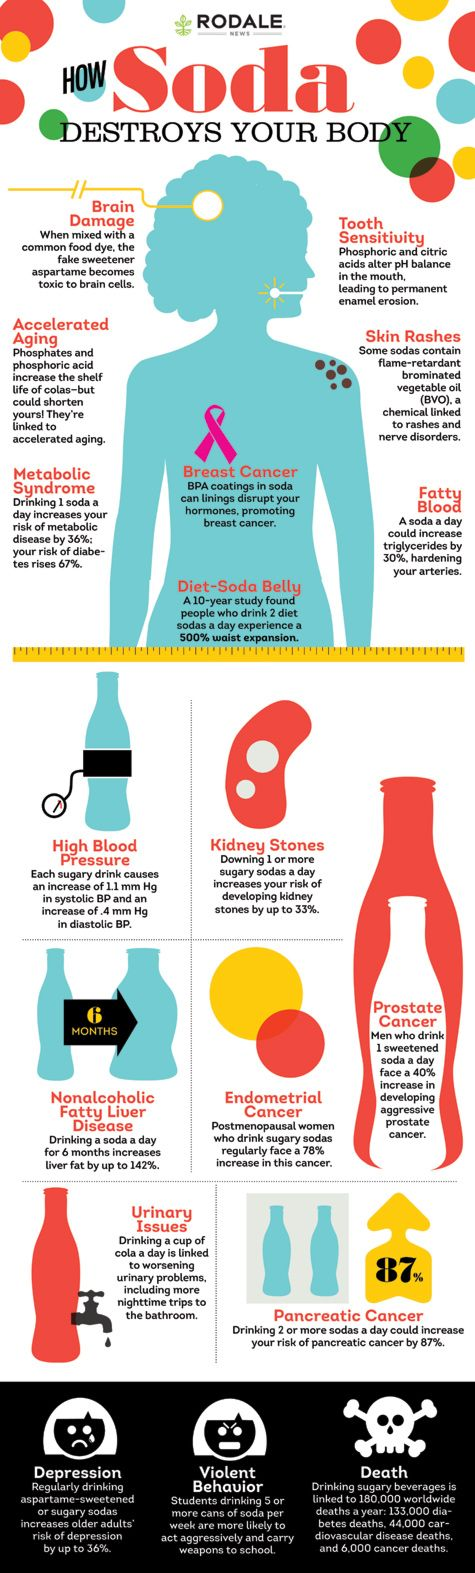 How Soda Destroys Your Body (INFOGRAPHIC) | Rodale News